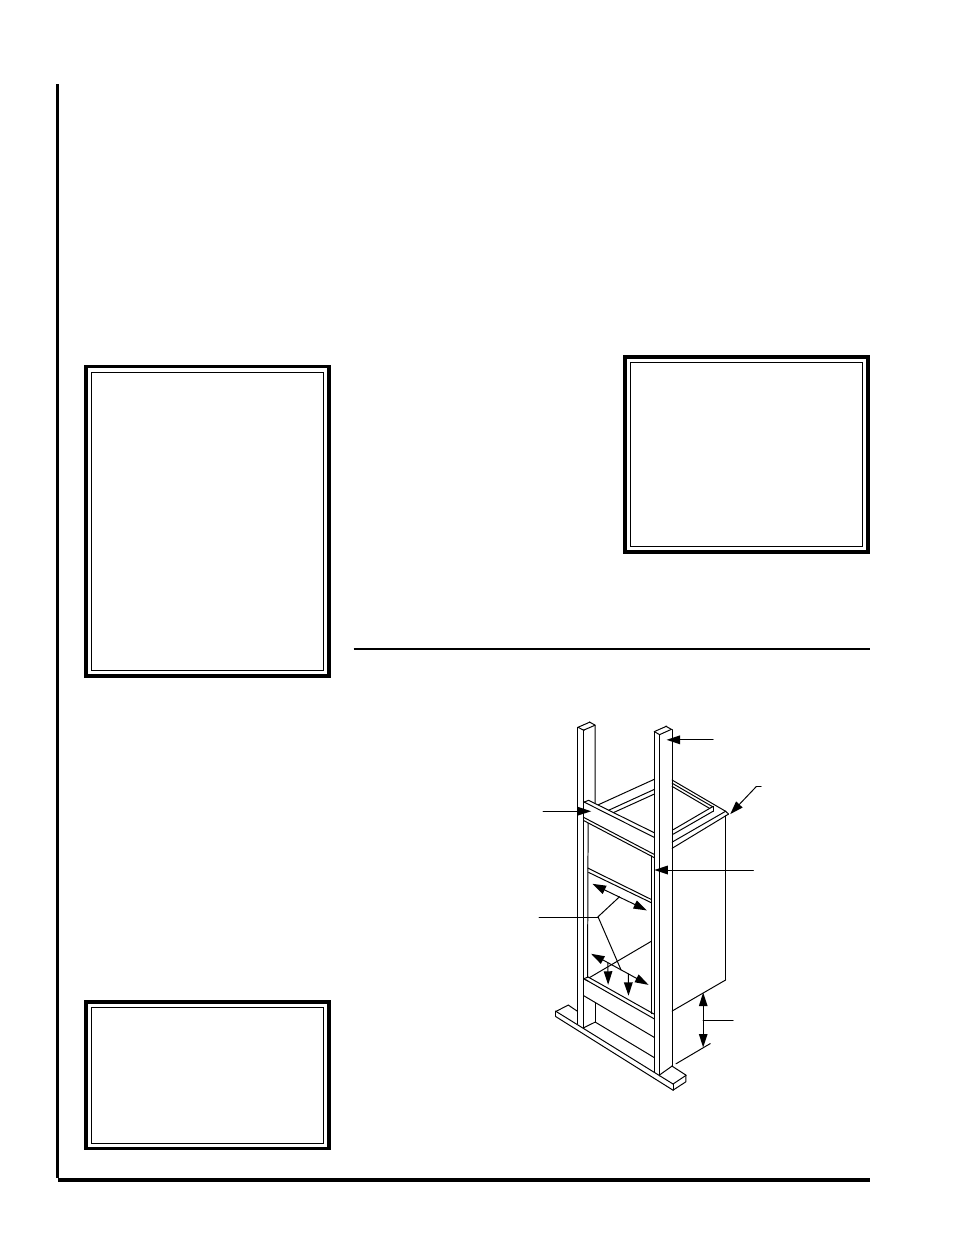 Warning Uc Recessed Wall Mounting First Co Vertical Front Refrigeration Wiring Diagram 5 Ton Return With Electric Heat User Manual Page 2 4